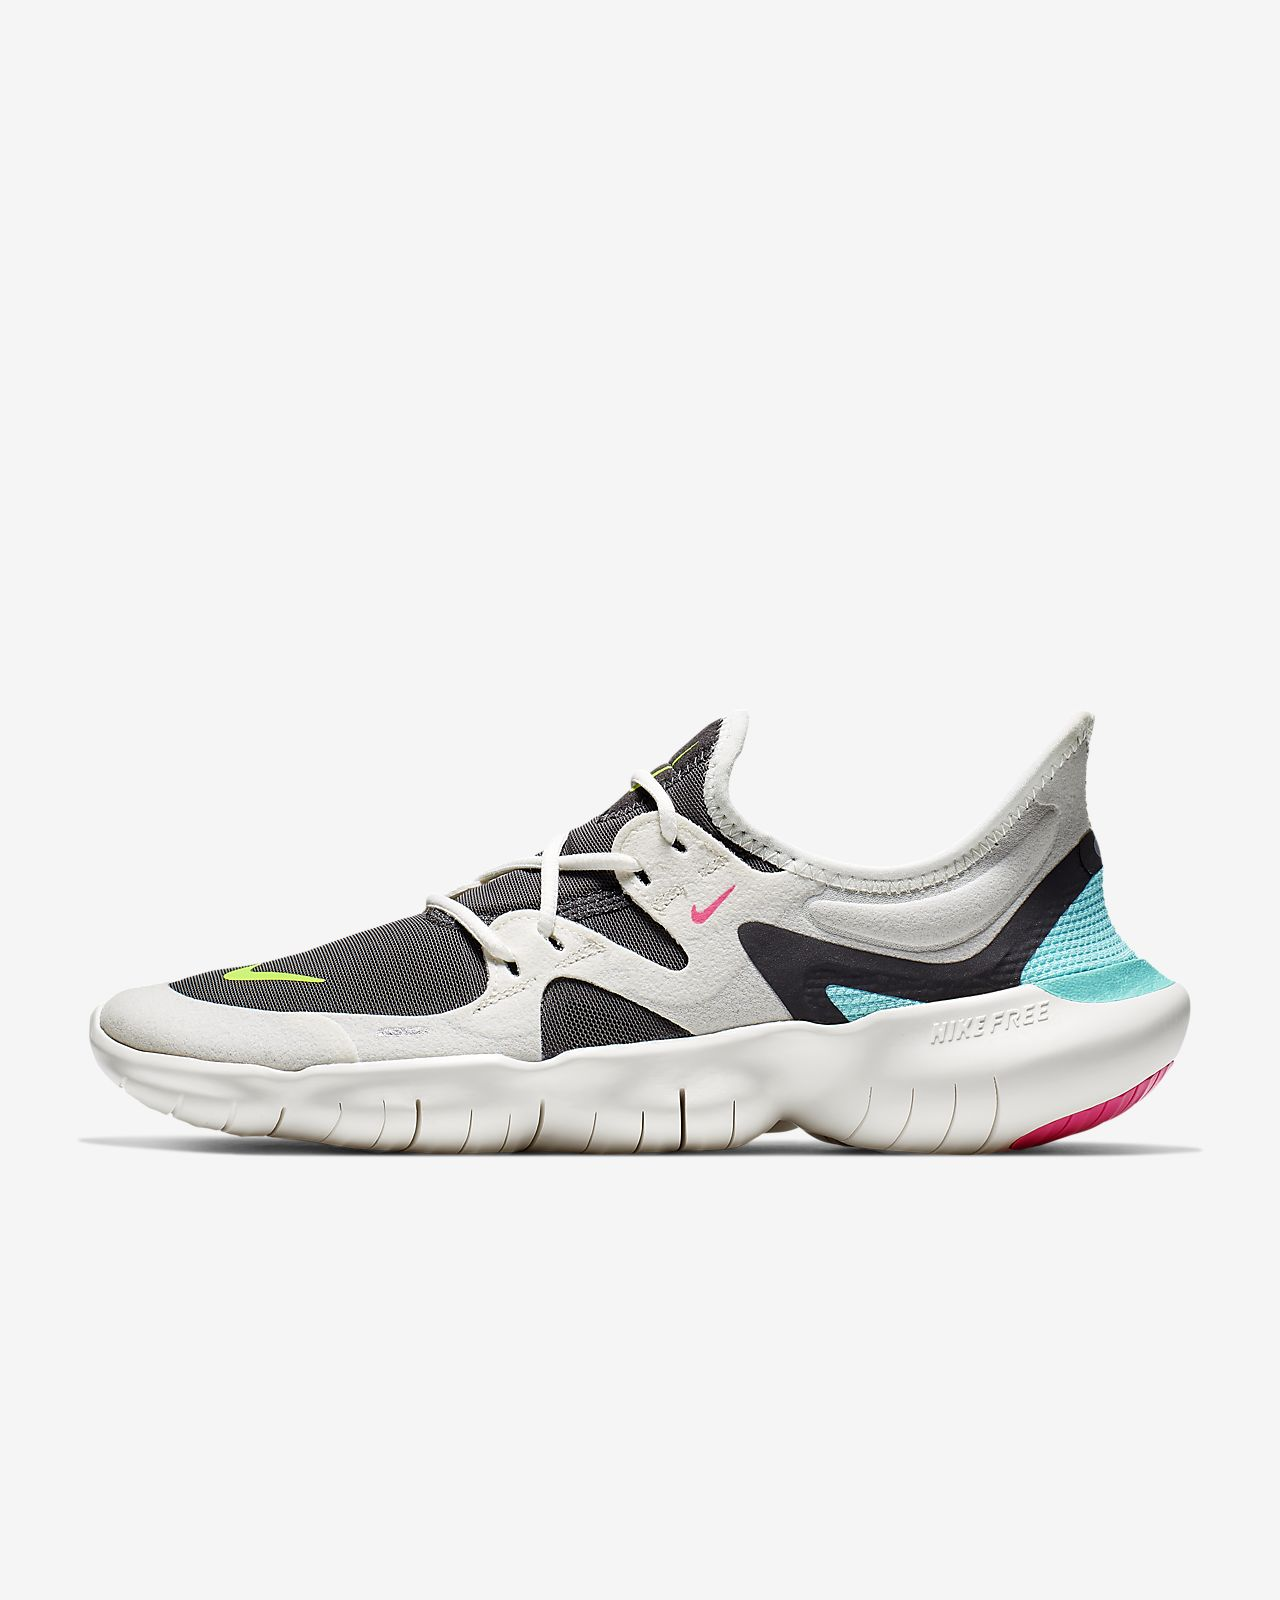 Nike Free Run 5.0 Womens : 50% Off Nike & klassisk Nike Air  New & Classic Nike Air